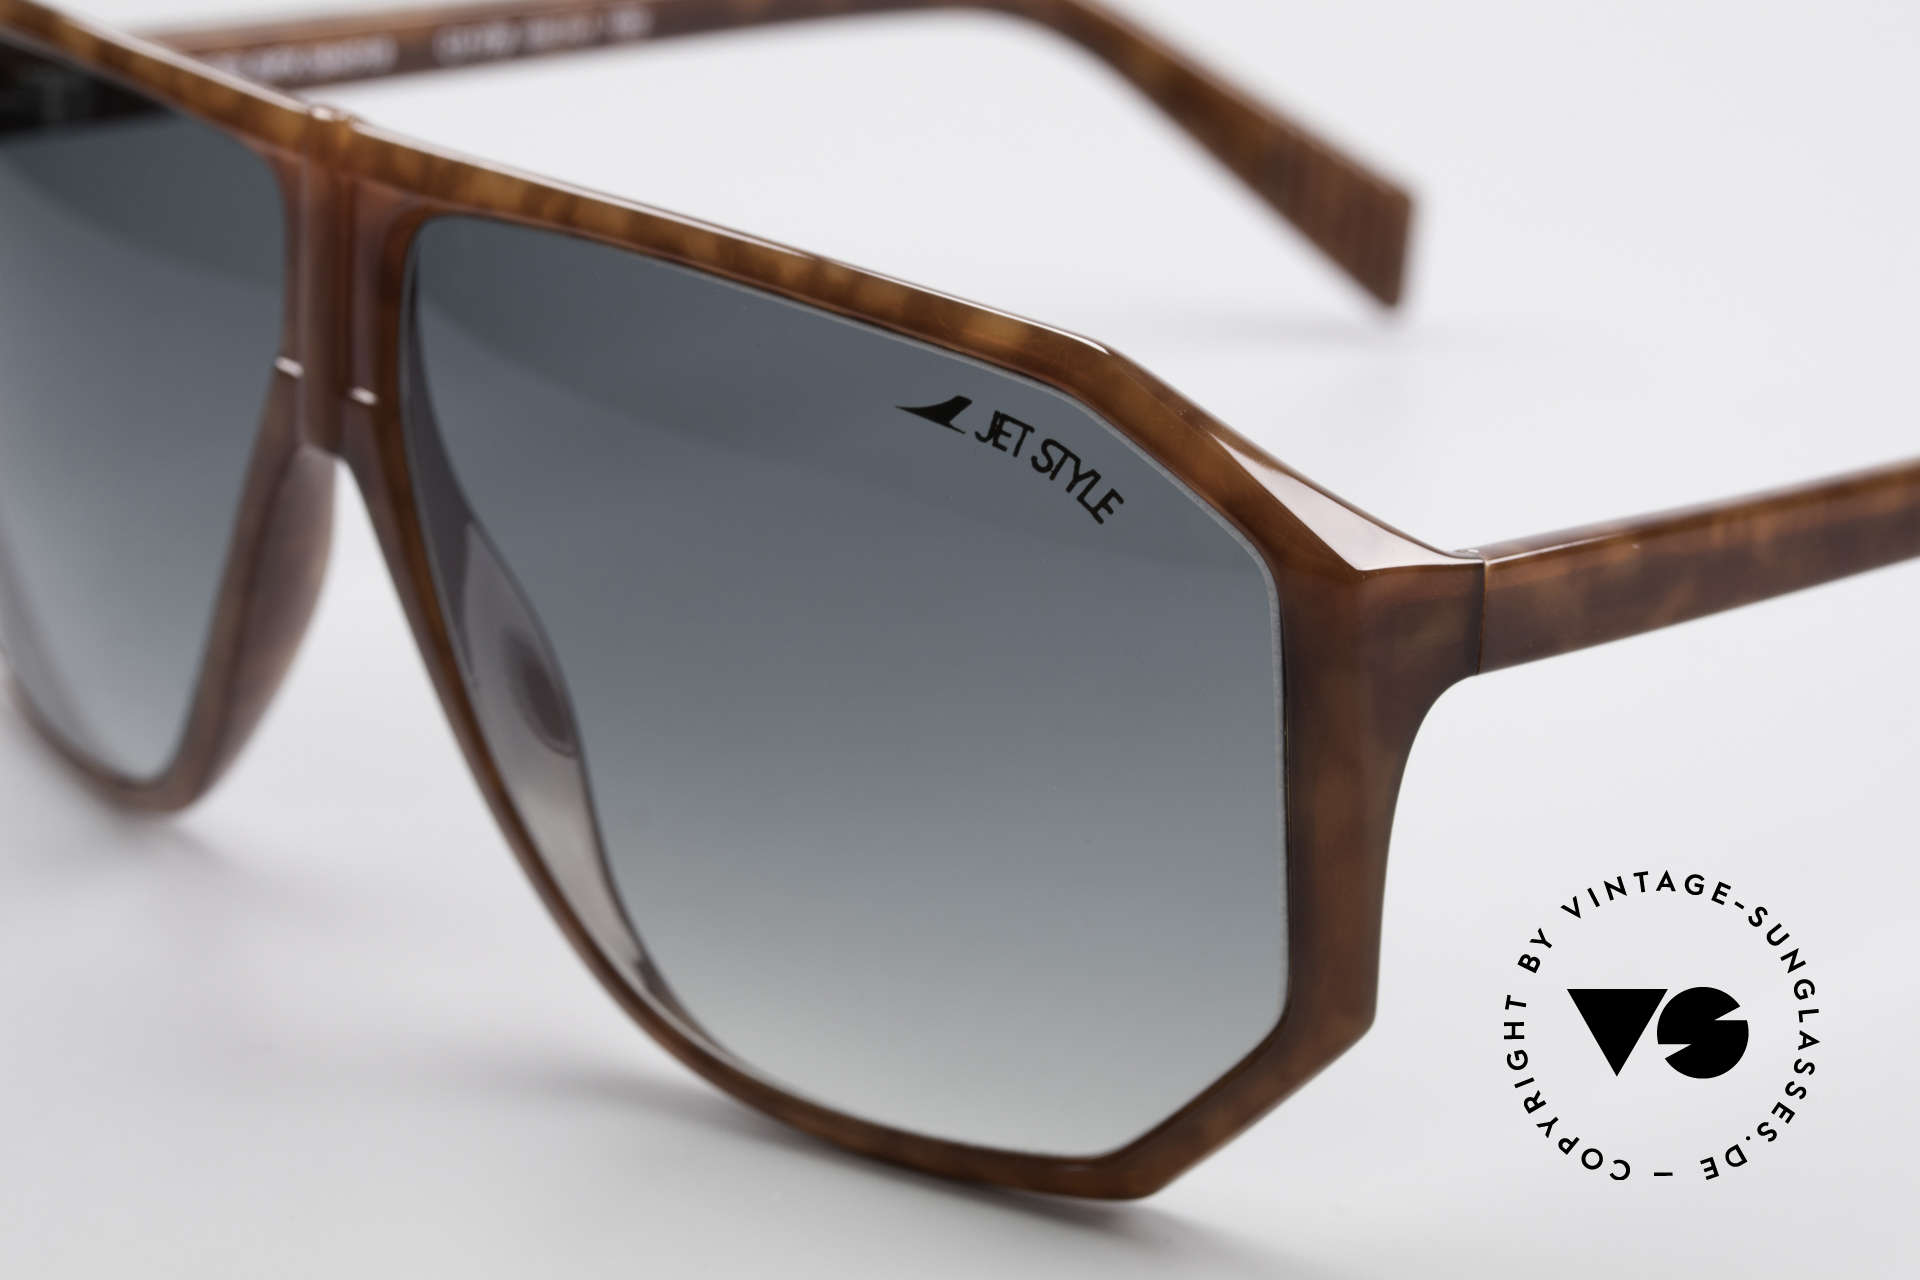 Silhouette M4019 JetStyle Aviator Sunglasses, outstanding craftsmanship (You must feel this!), Made for Men